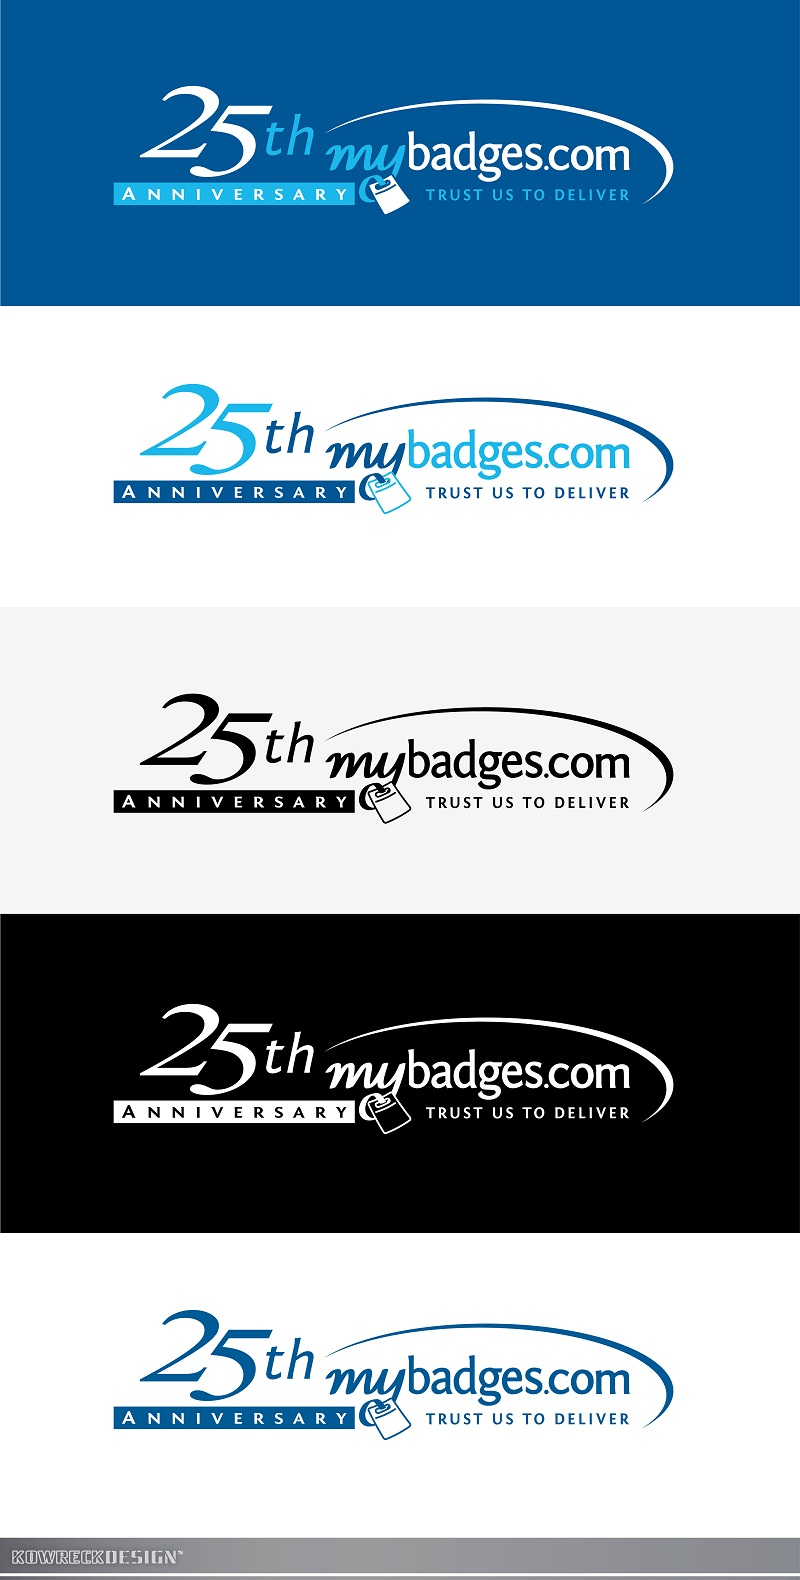 Logo Design by kowreck - Entry No. 145 in the Logo Design Contest 25th Anniversary Logo Design Wanted for MyBadges.com.